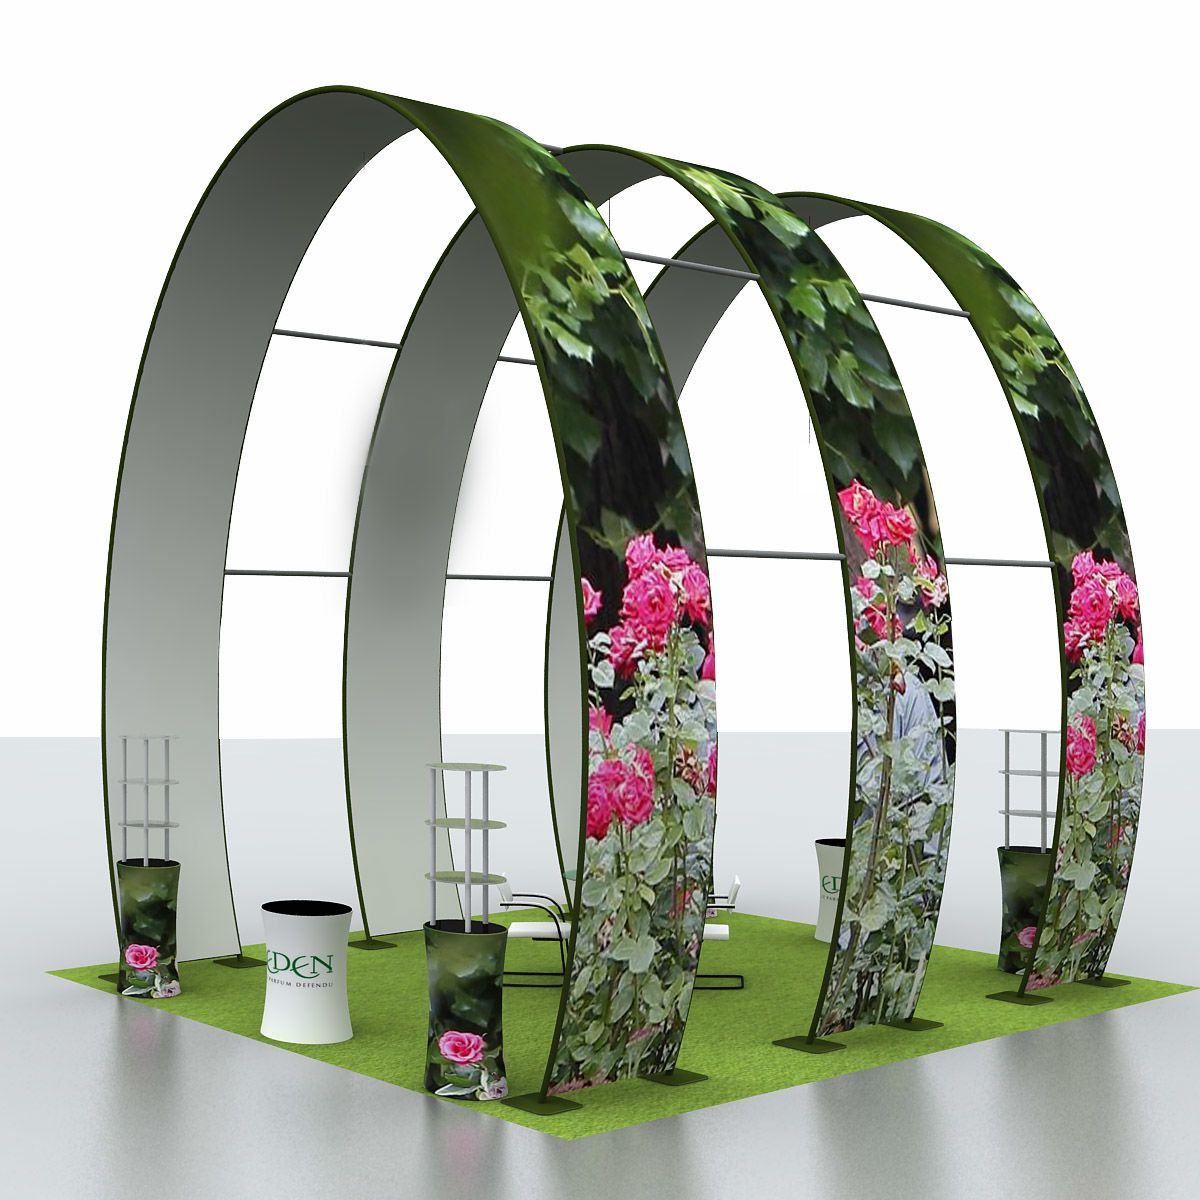 20 x 60ft Grand Arch Display Kit